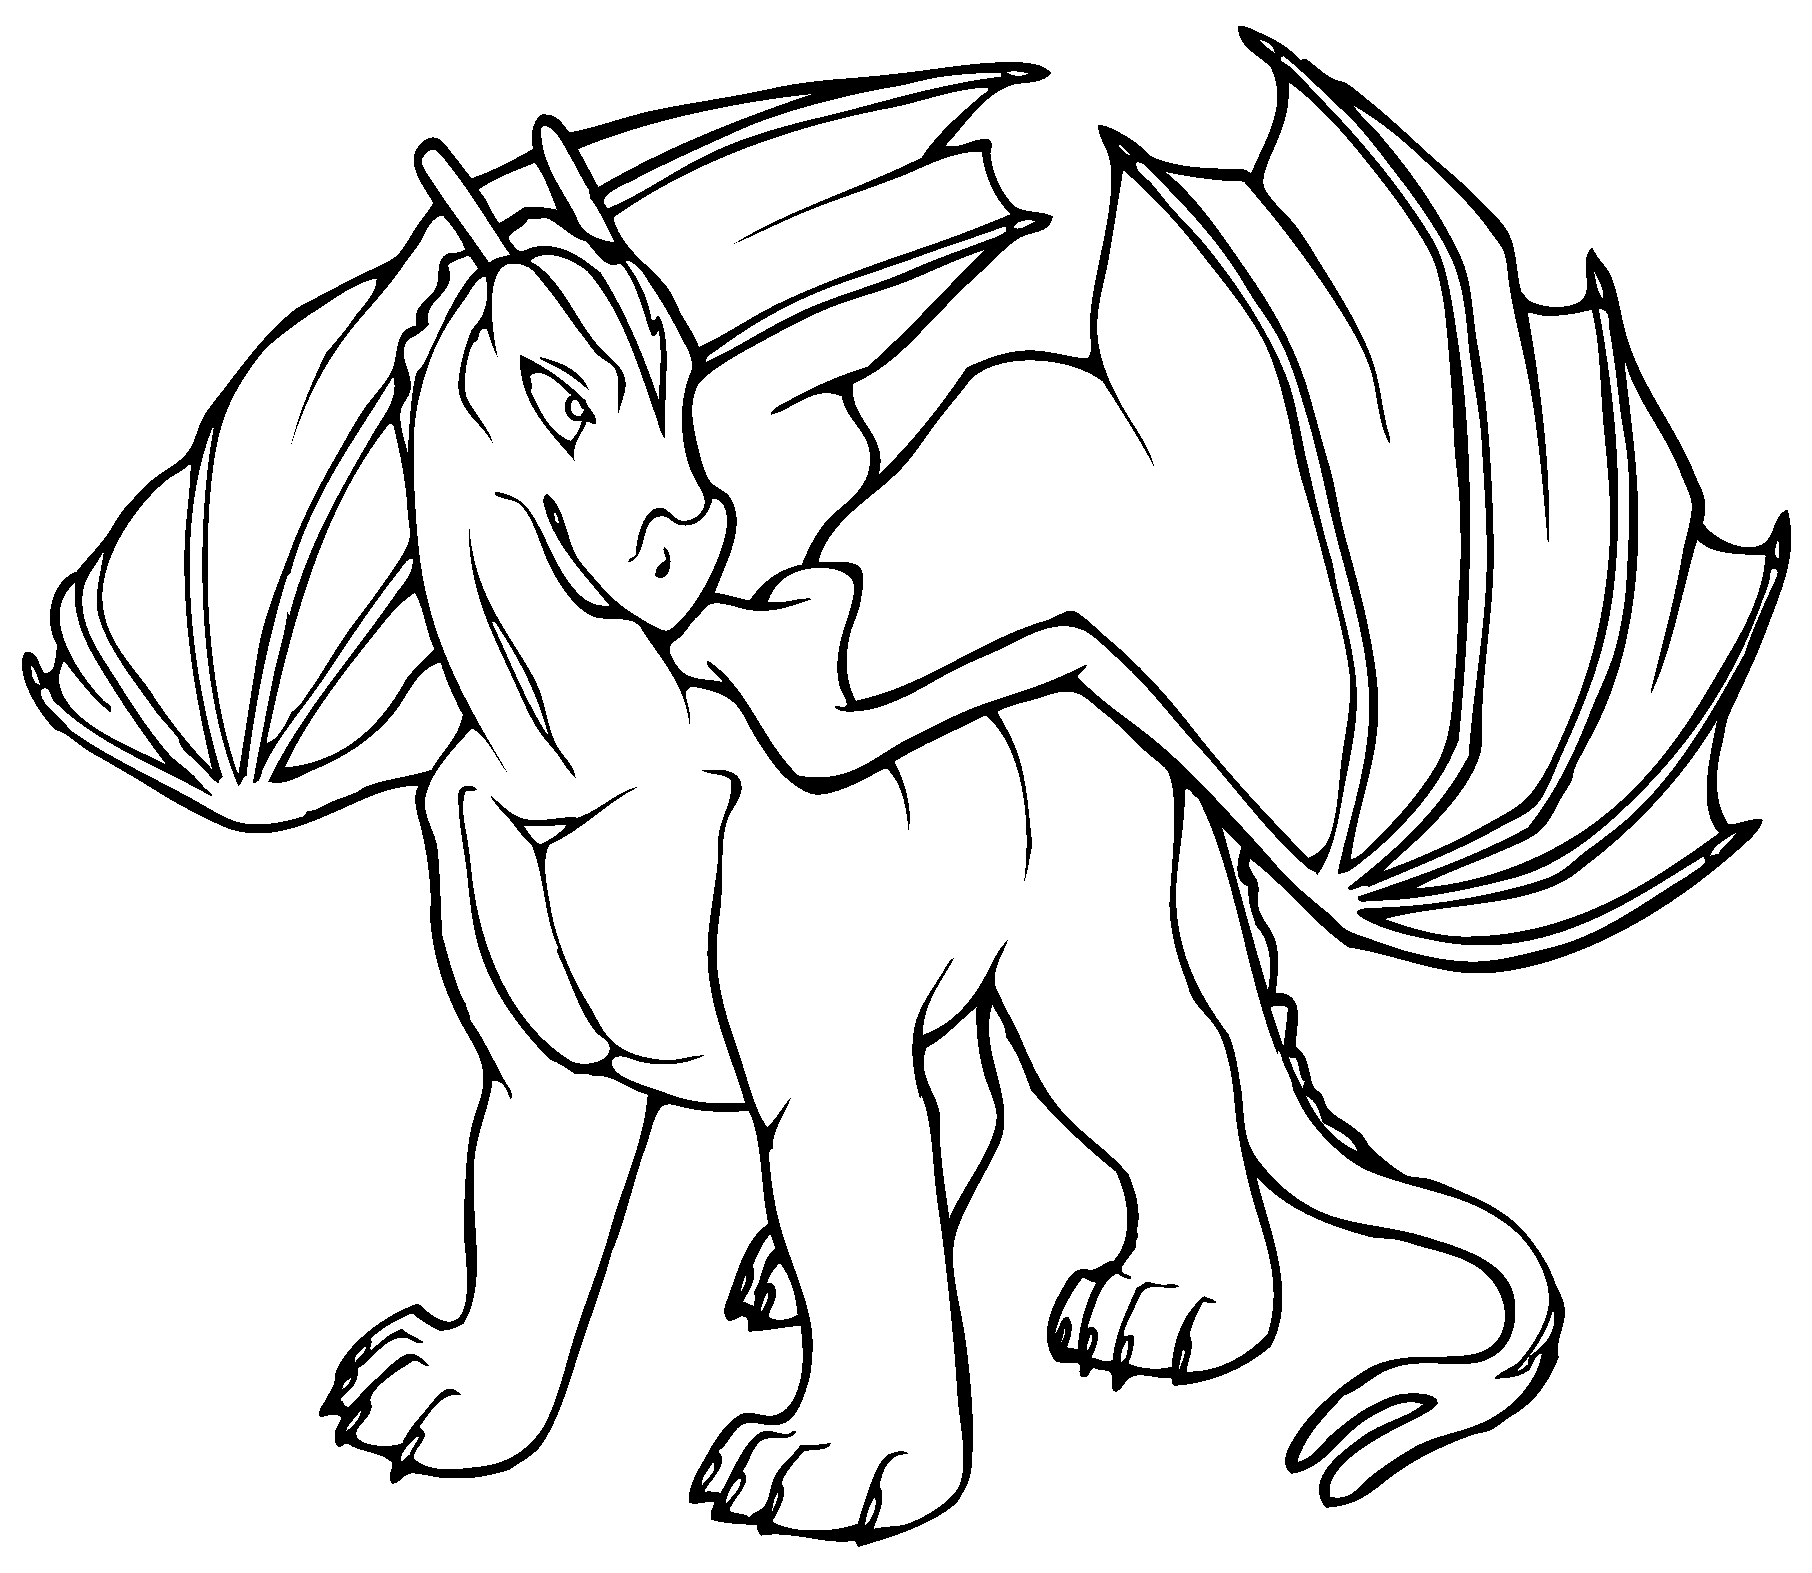 Free printable dragon coloring pages for kids for Free printable cartoon coloring pages